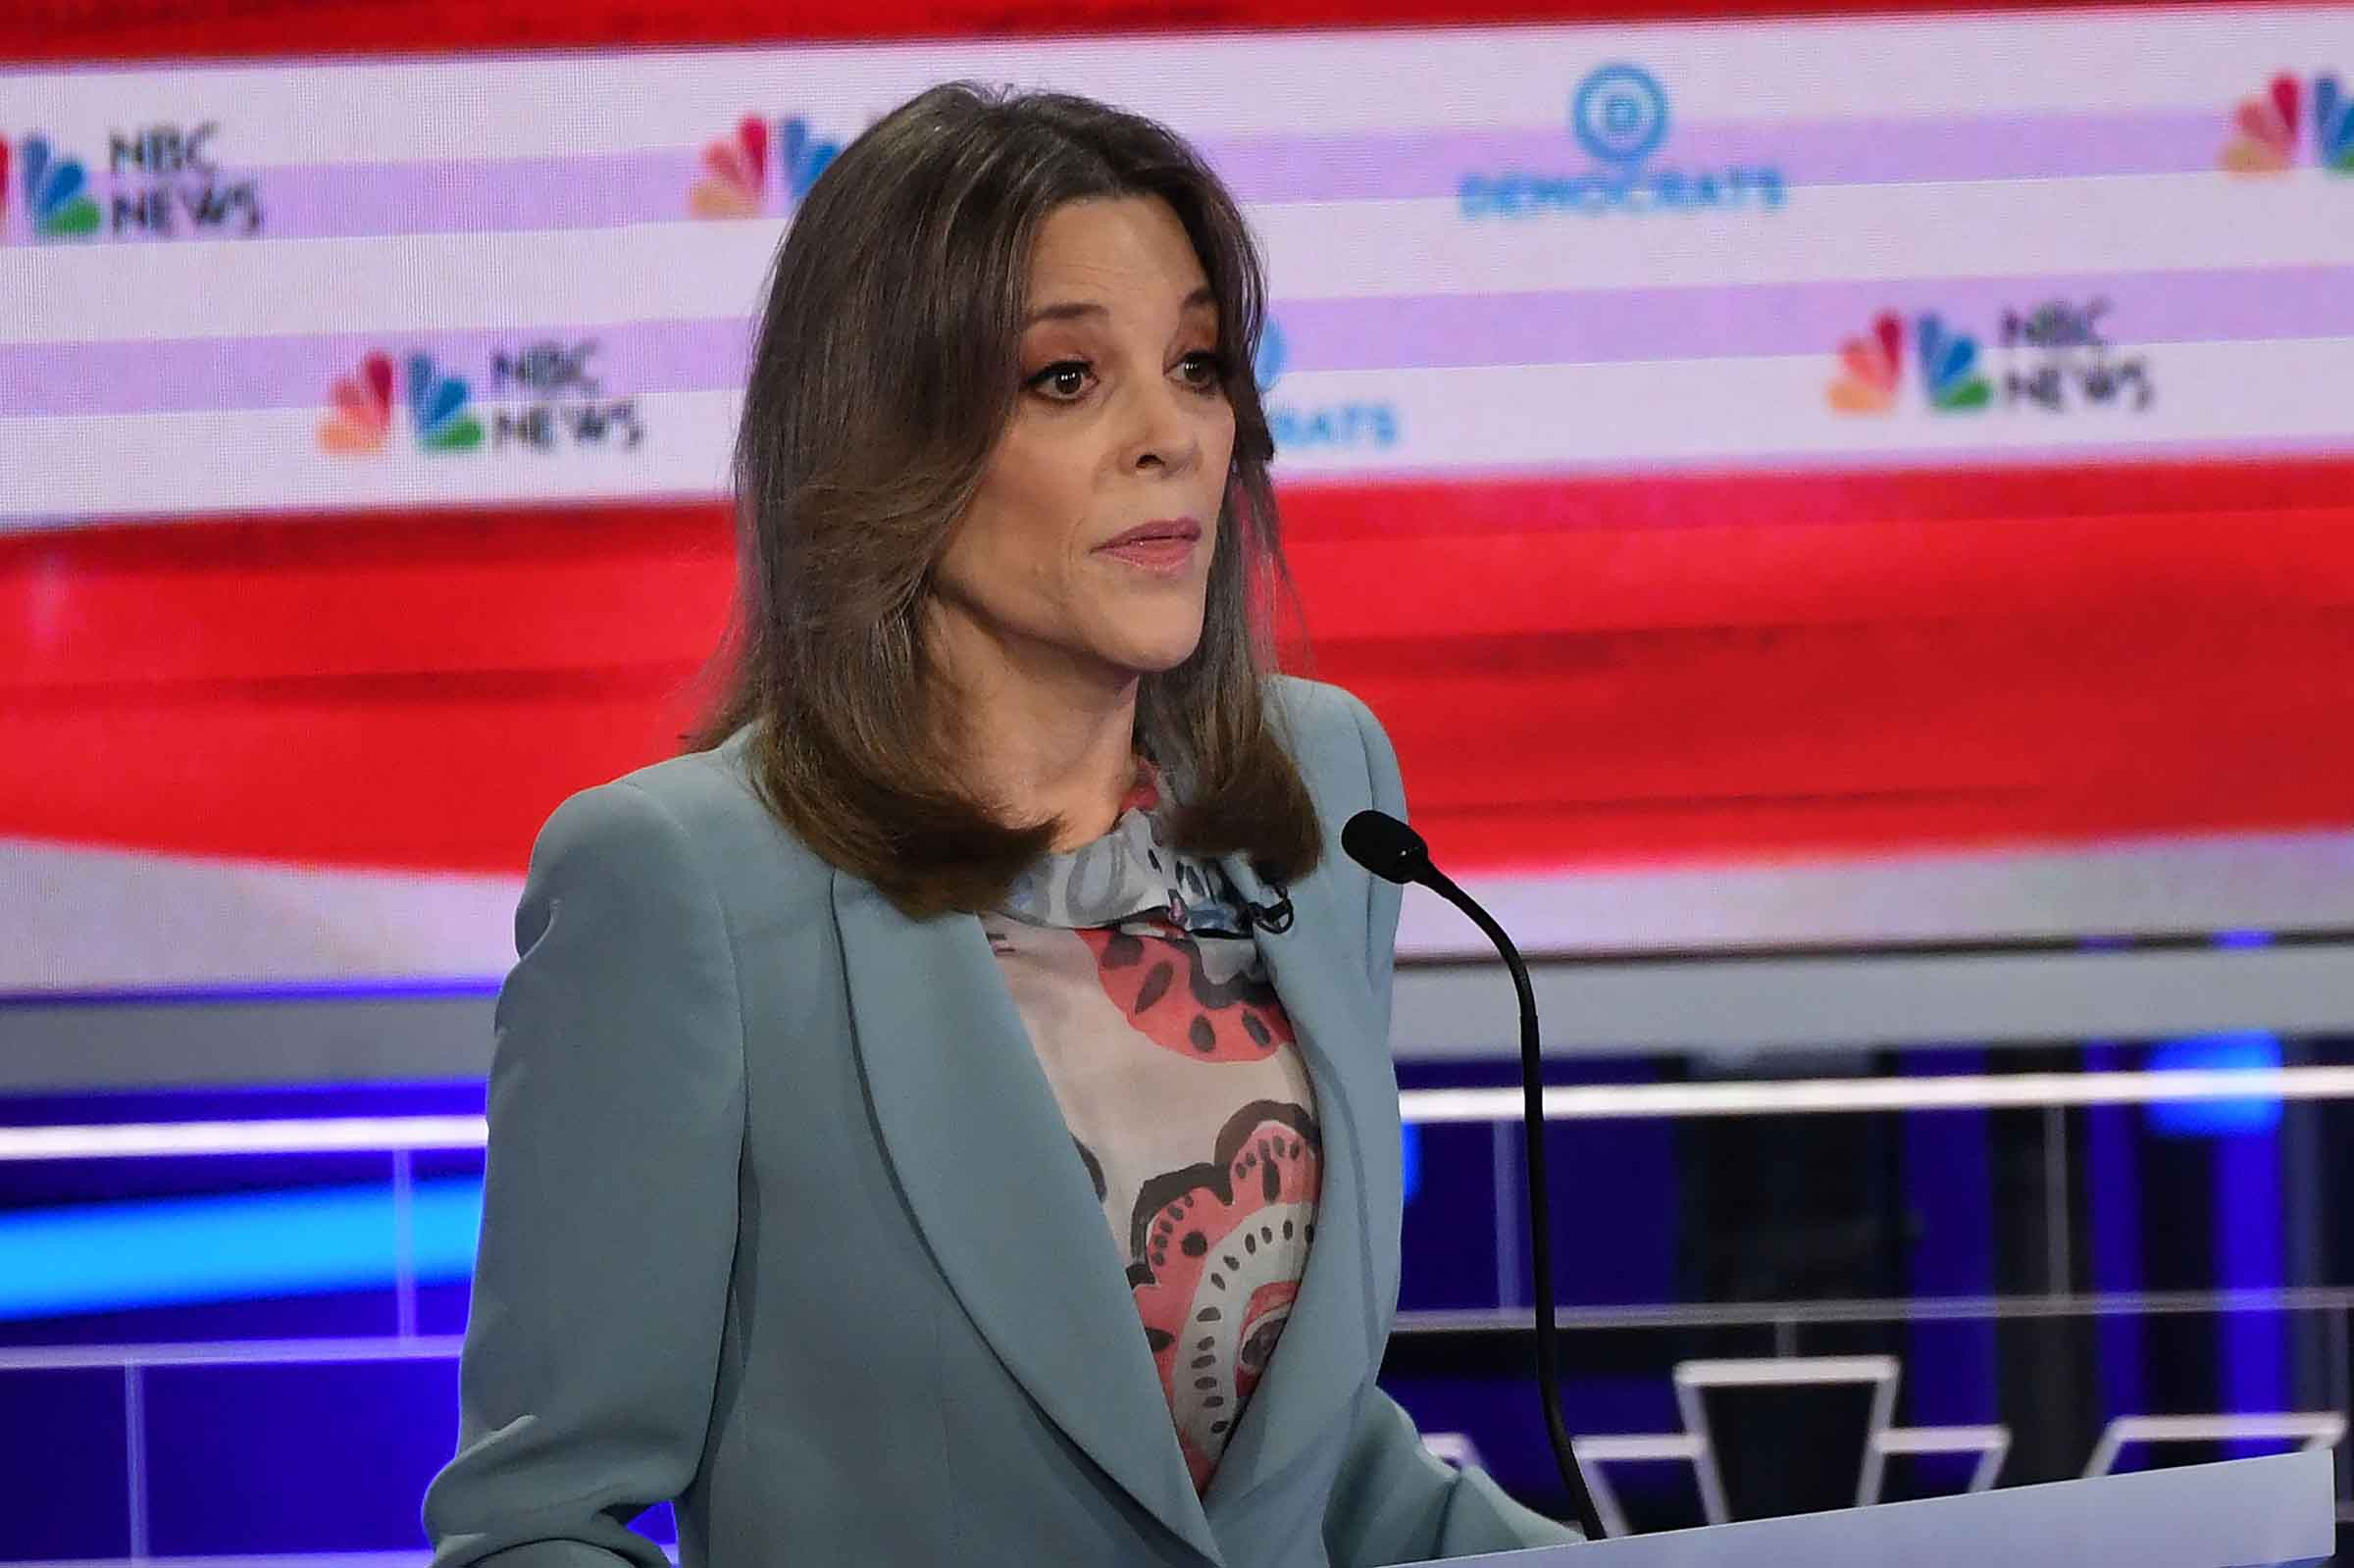 Democratic presidential hopeful US author Marianne Williamson speaks during the second Democratic primary debate of the 2020 presidential campaign season hosted by NBC News at the Adrienne Arsht Center for the Performing Arts in Miami, Florida, June 27, 2019.